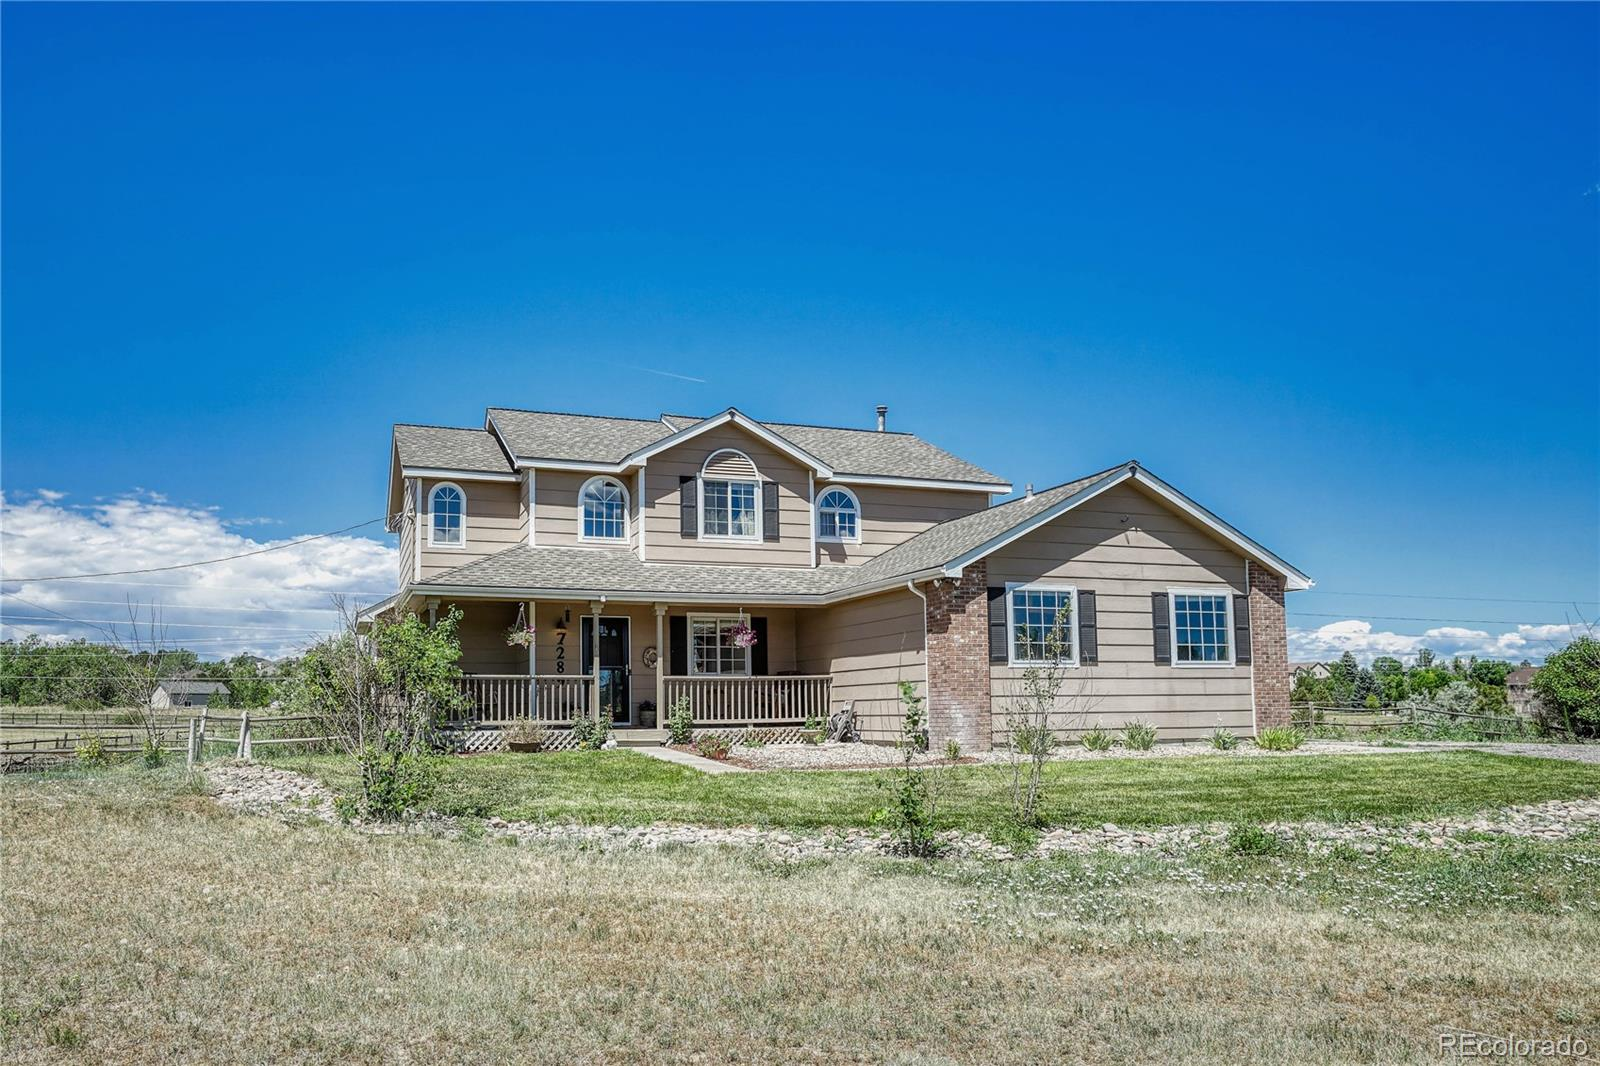 7289 S Ireland Way, Centennial, CO 80016 - Centennial, CO real estate listing